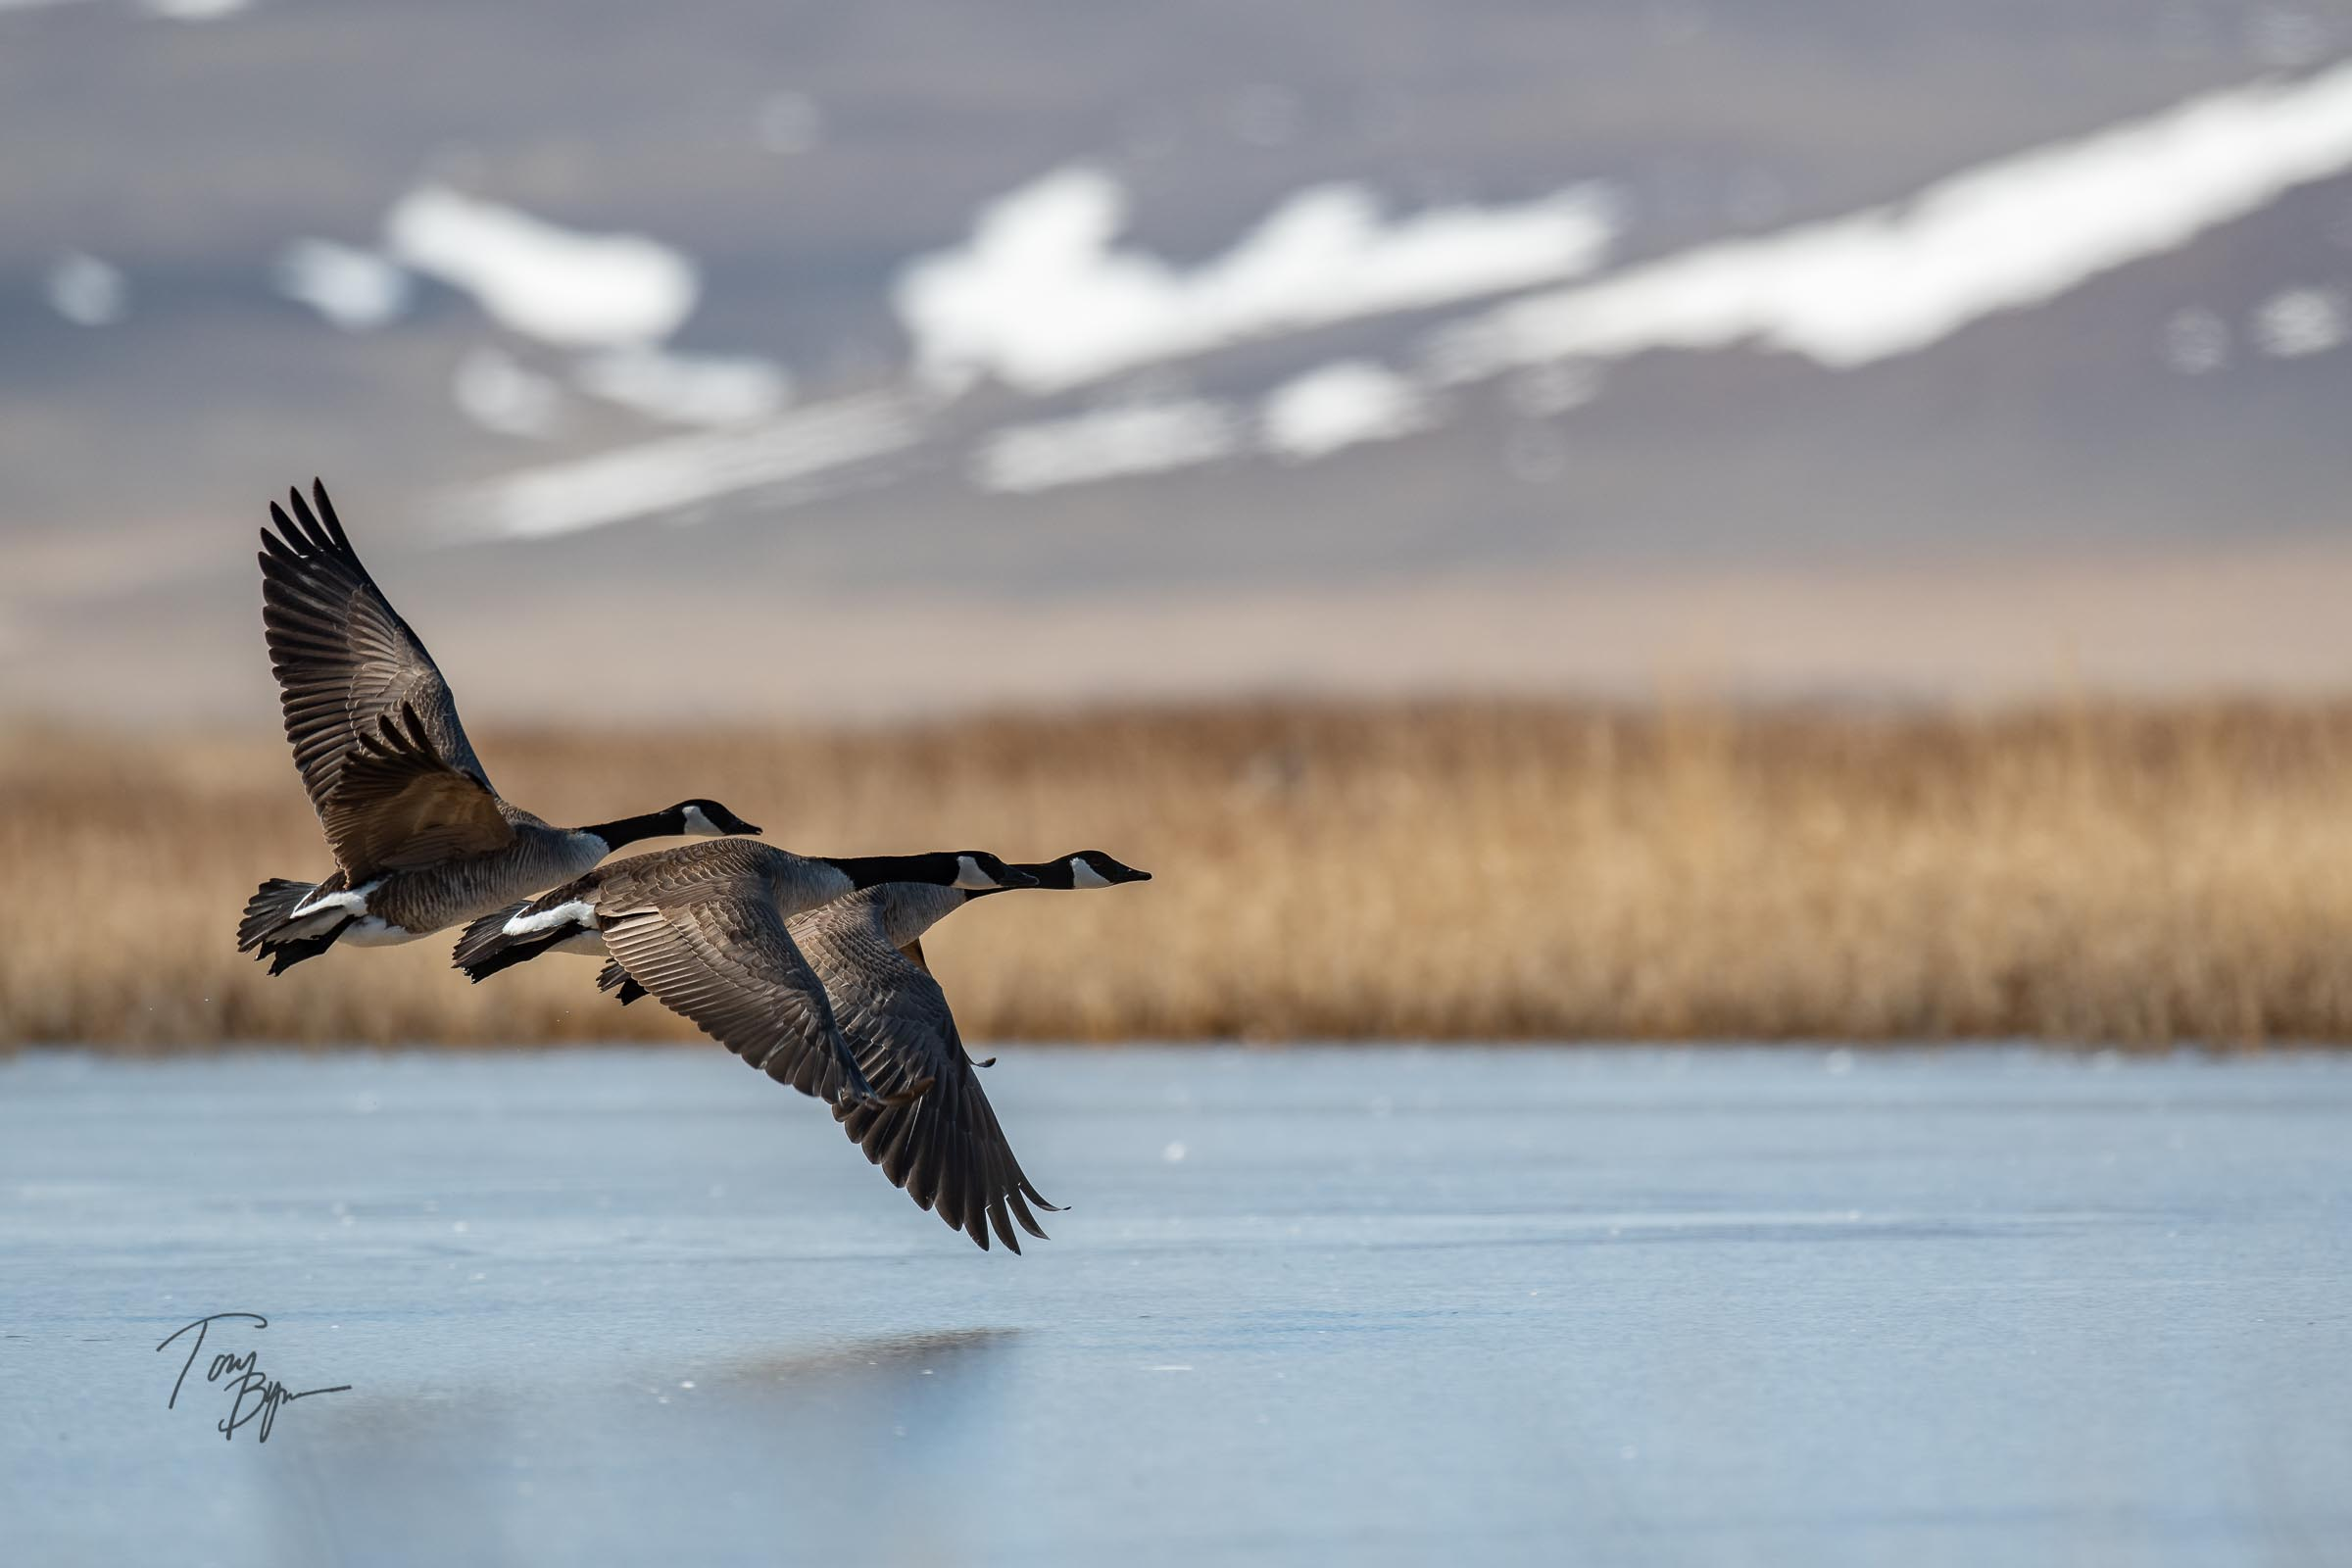 Three canada geese taking flight over a frozen pond along the Rocky Mountain Front, Montana. © Tony Bynum